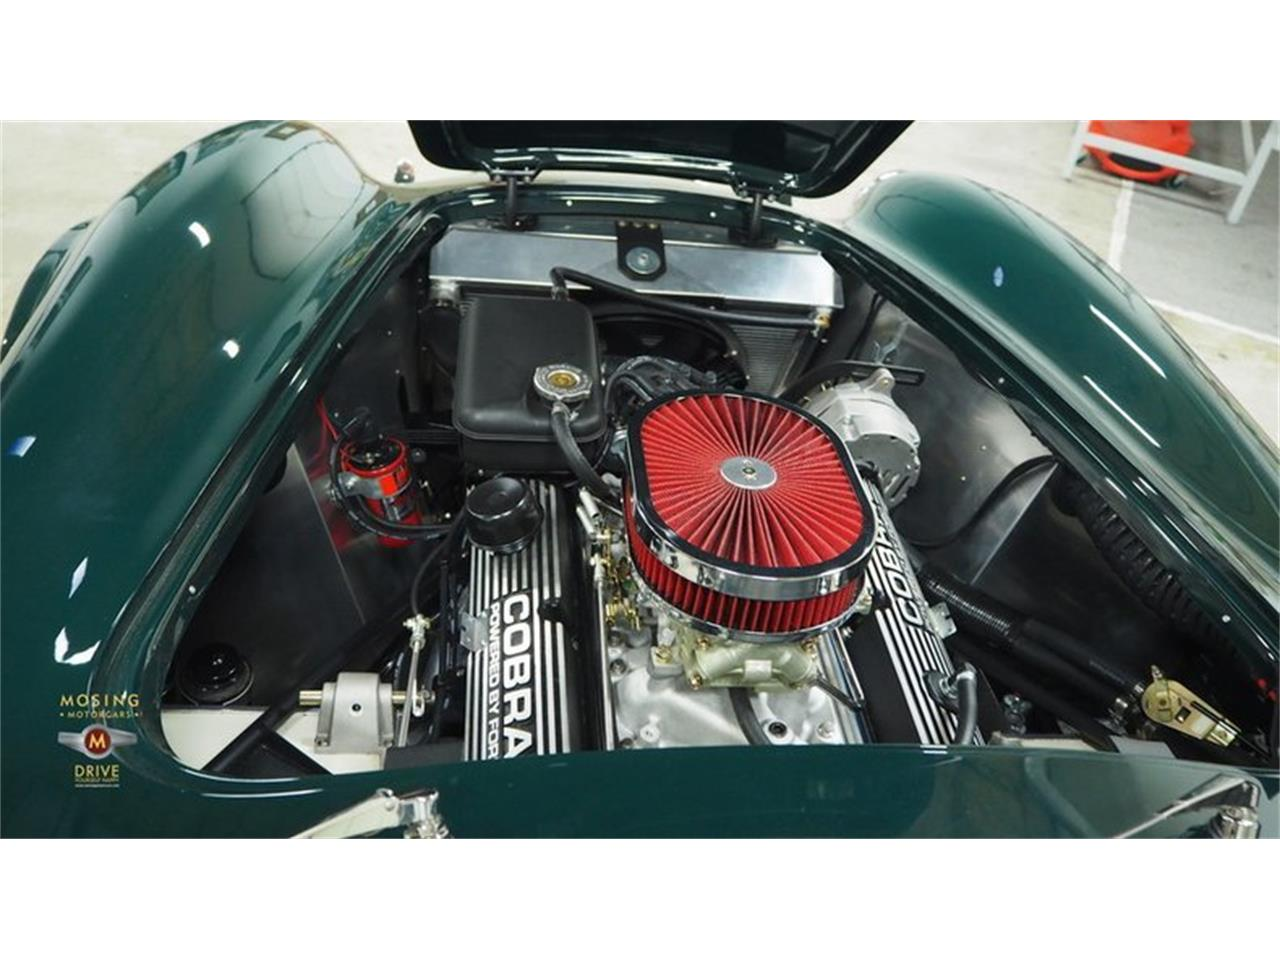 2016 Superformance MKII (CC-1216103) for sale in Austin, Texas